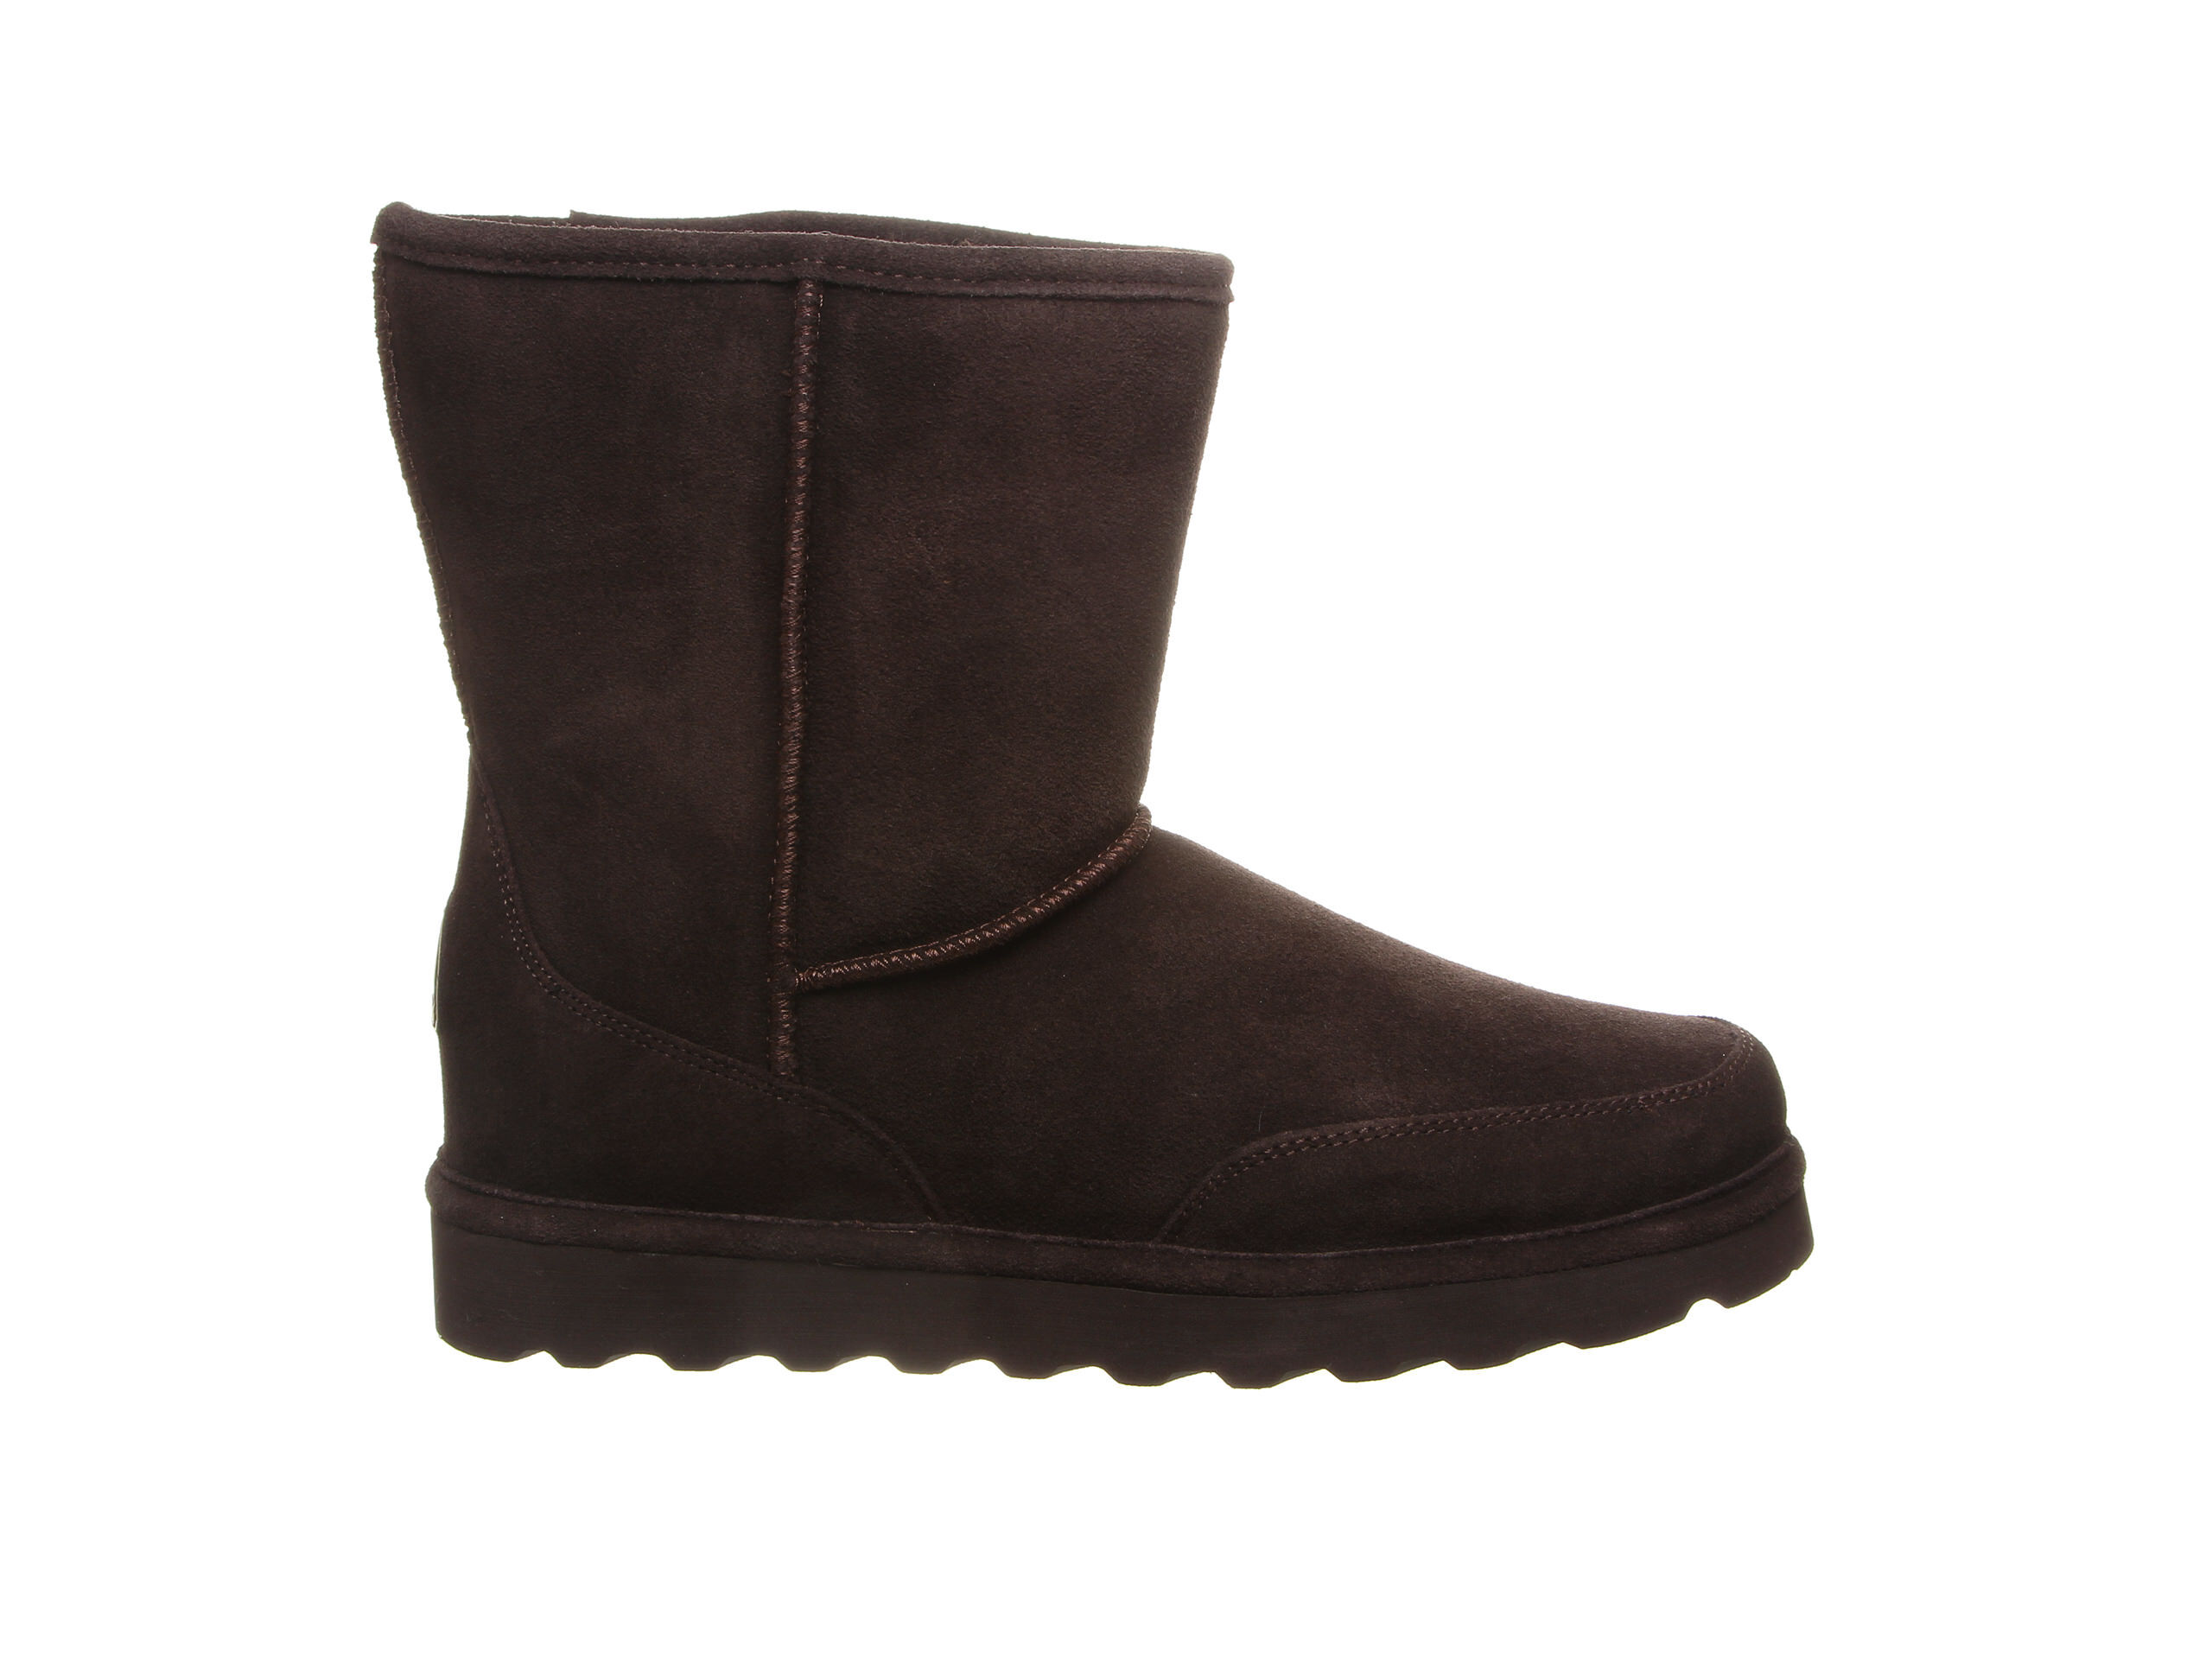 buy clearance Men's Bearpaw Brady Pull-On Boots Chocolate